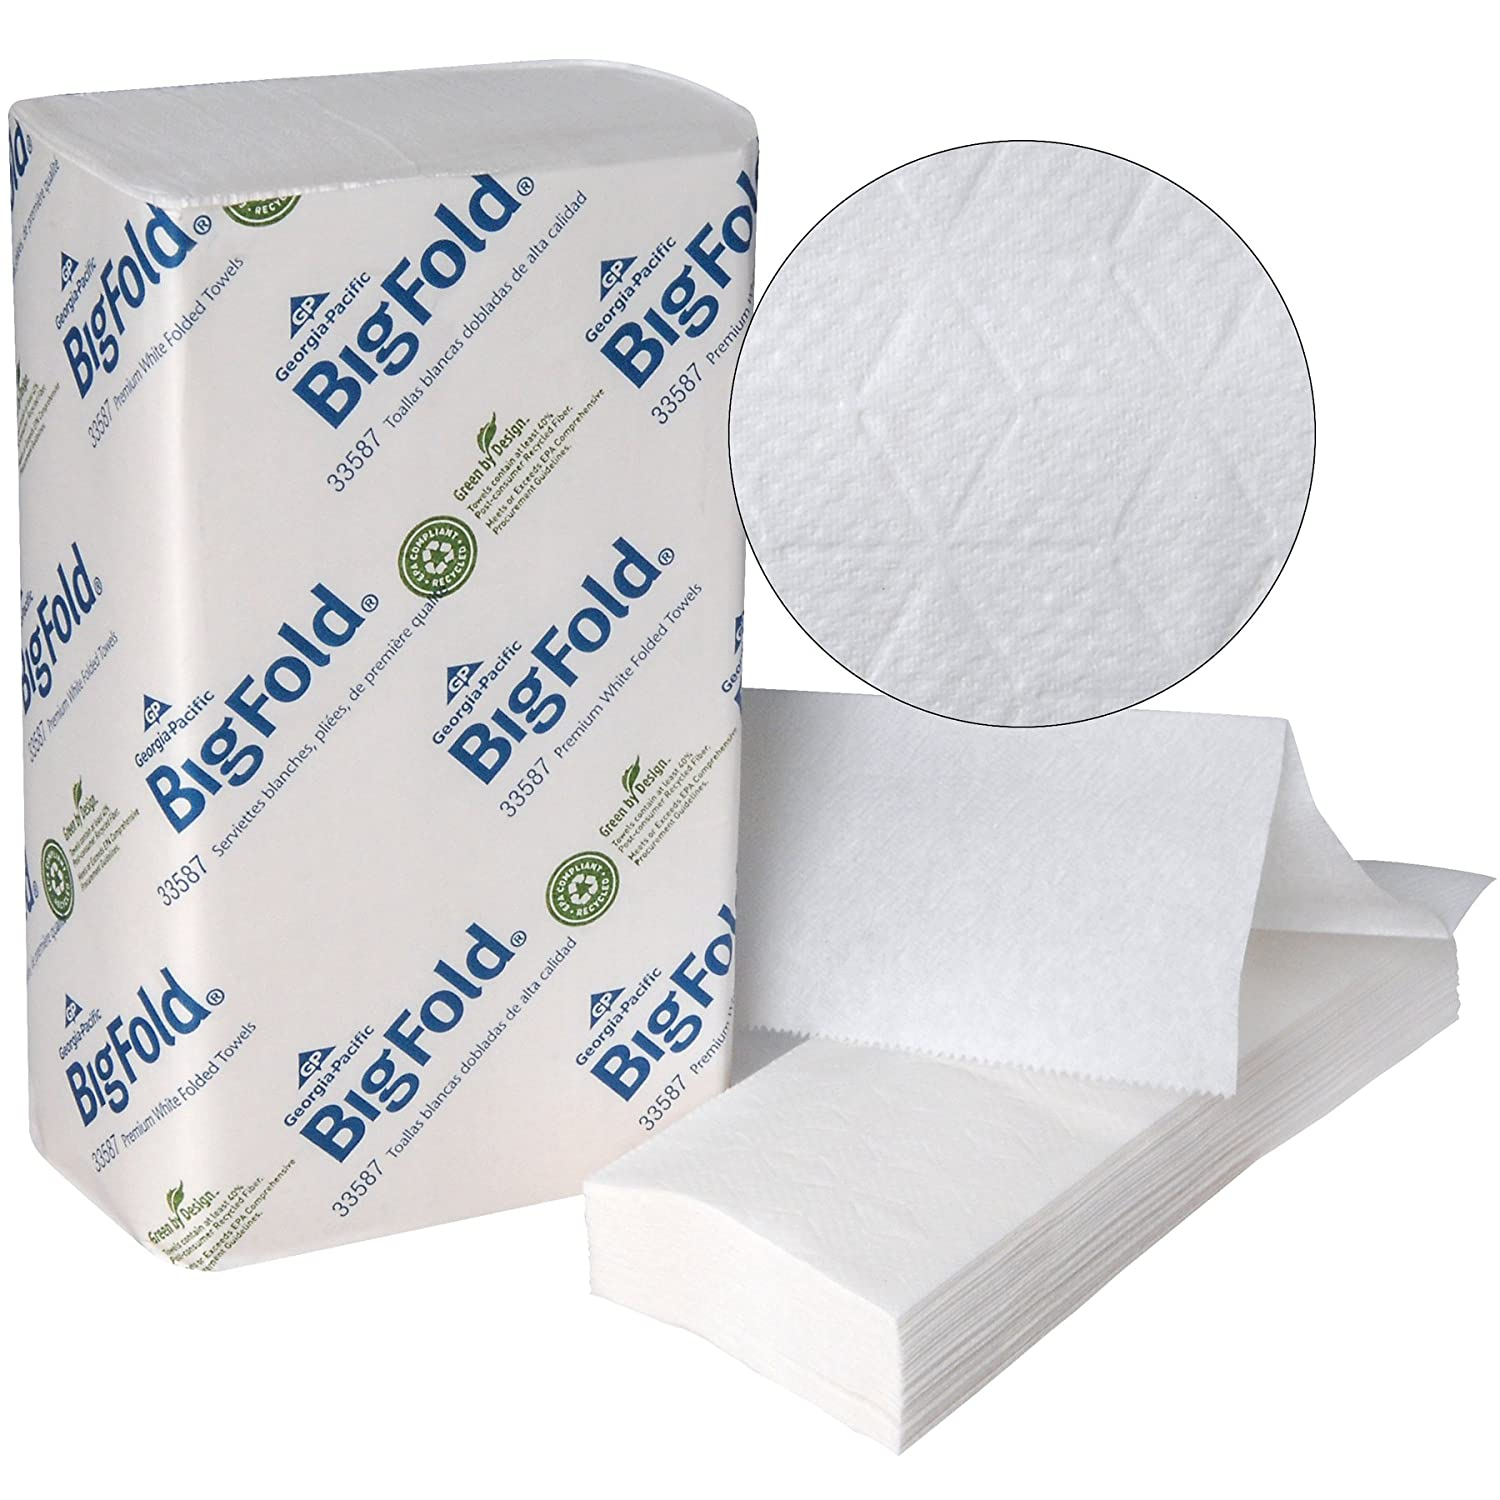 Amazon.com: Bigfold Pacific Blue Ultra Premium Recycled Paper Towels (previously branded Big Fold Z) by GP PRO (Georgia-Pacific), White, 33587, ...